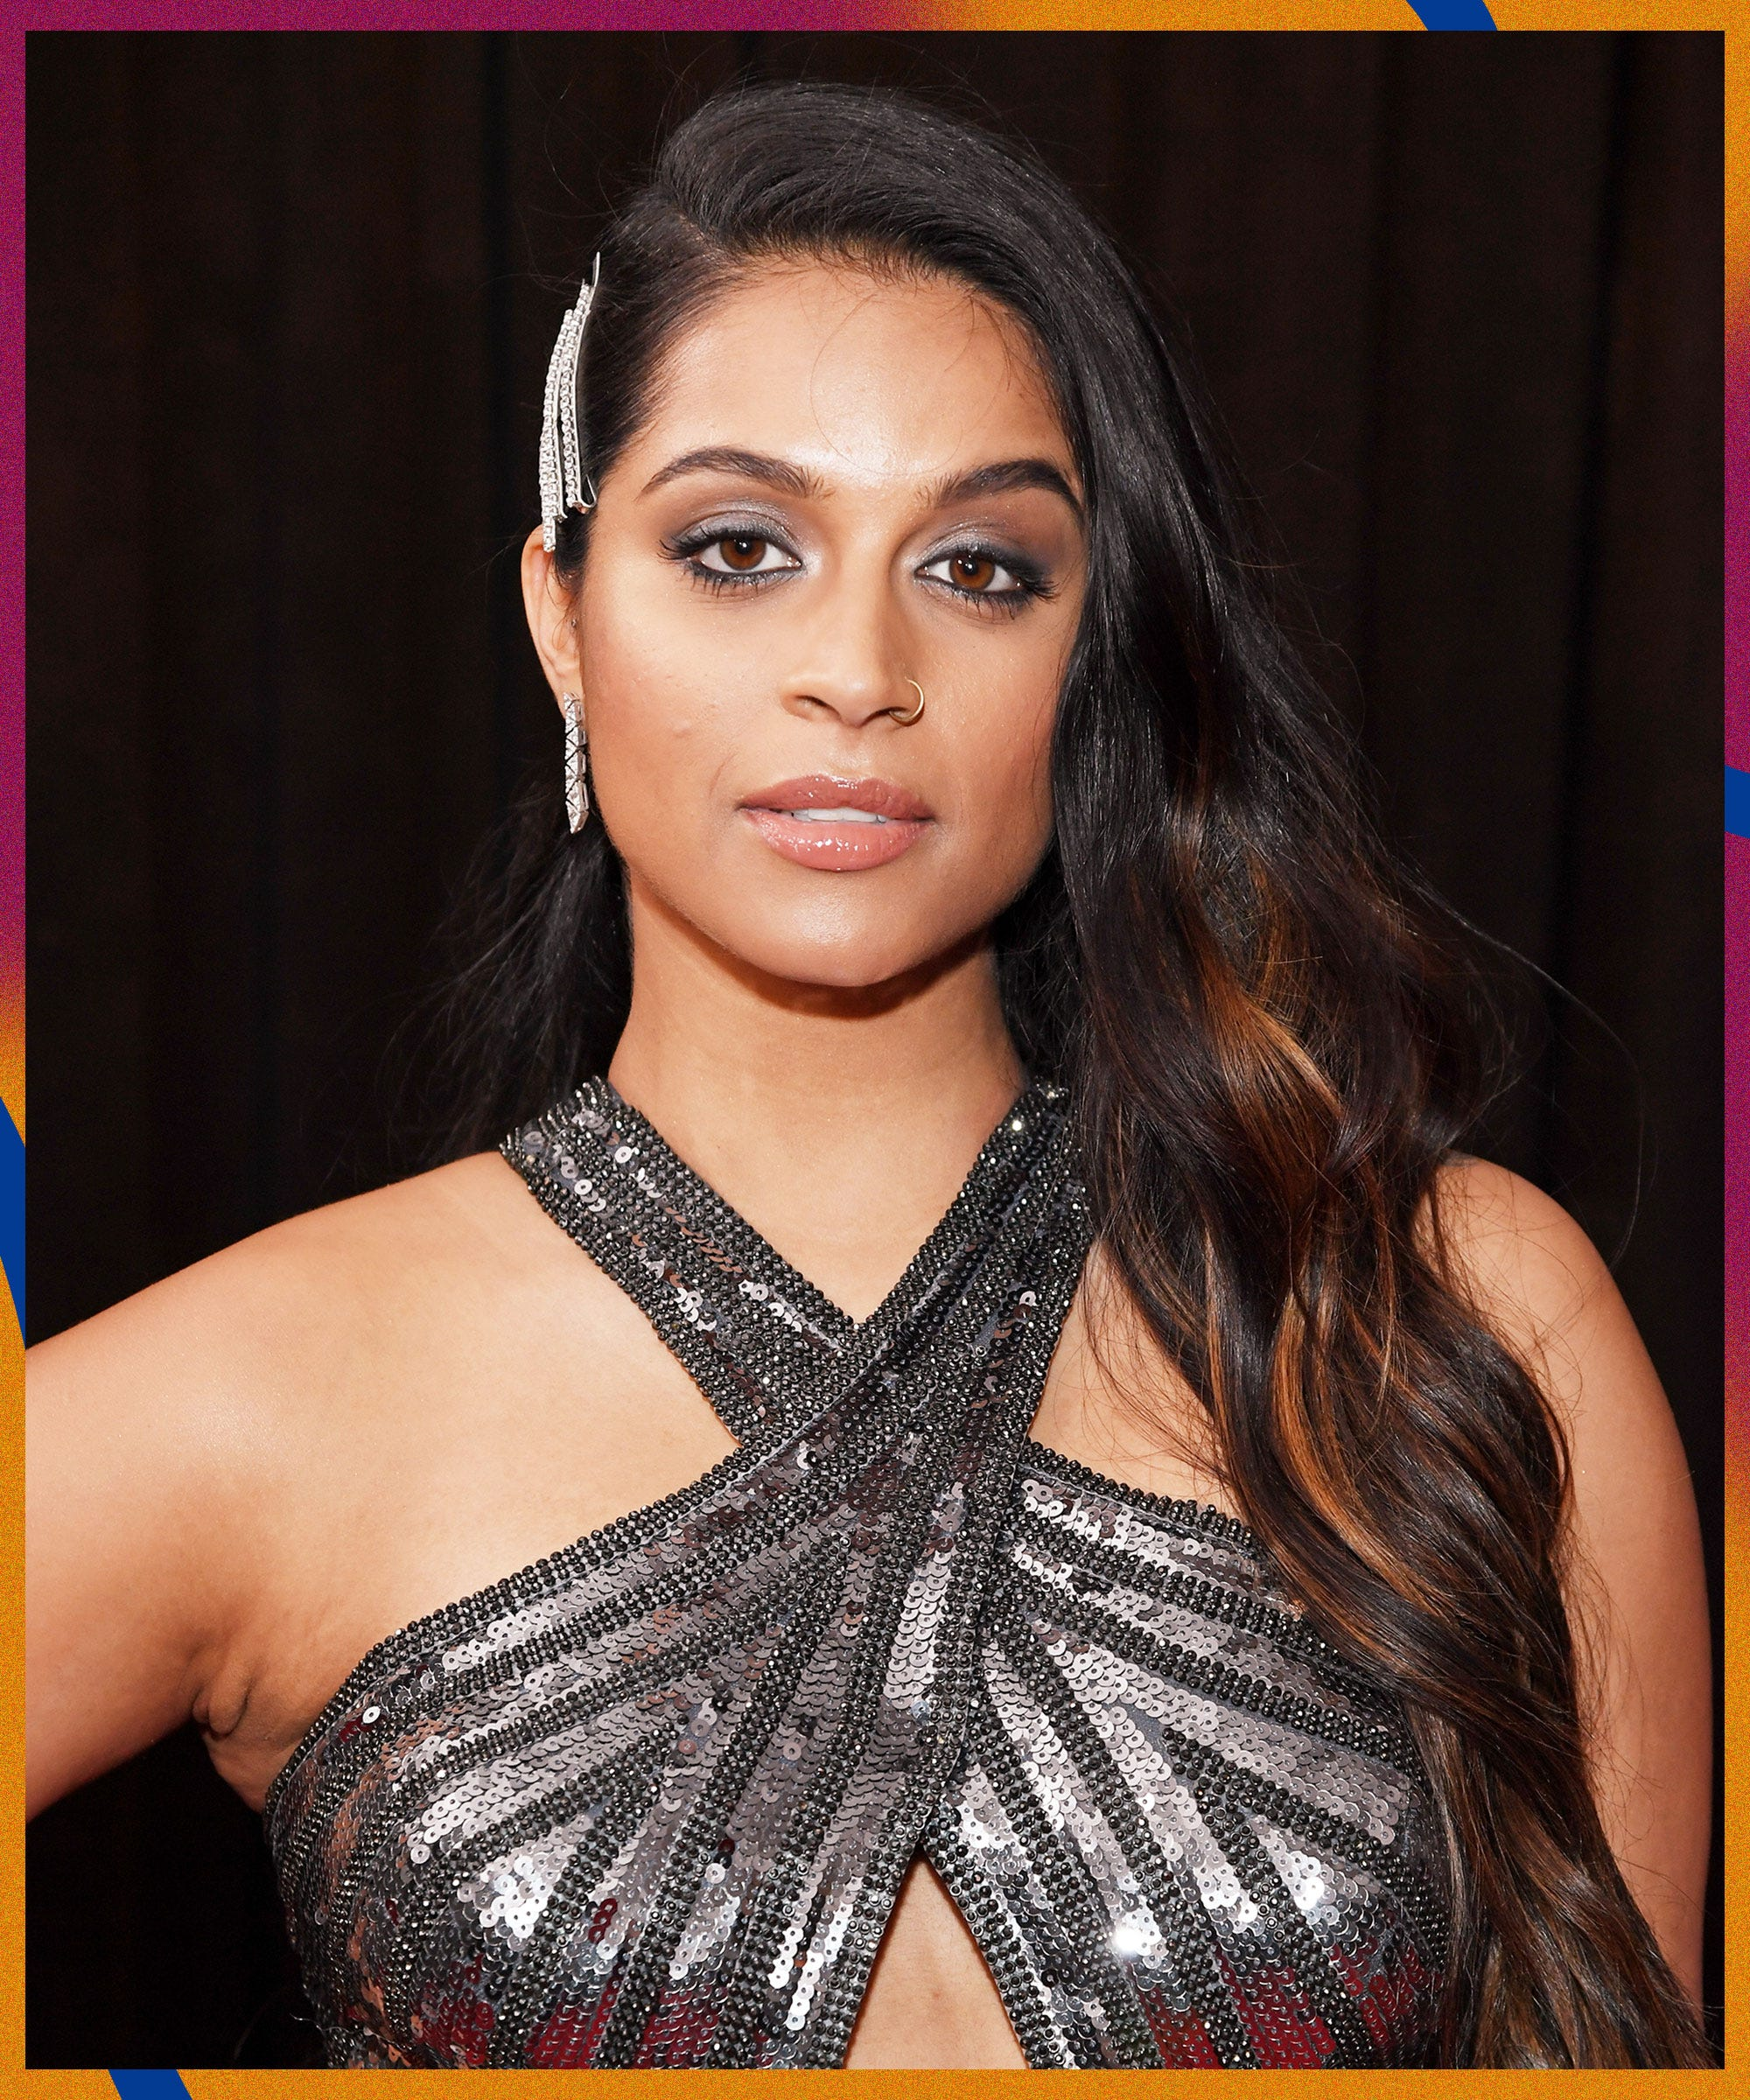 Lilly Singh nudes (93 foto and video), Sexy, Leaked, Twitter, butt 2006